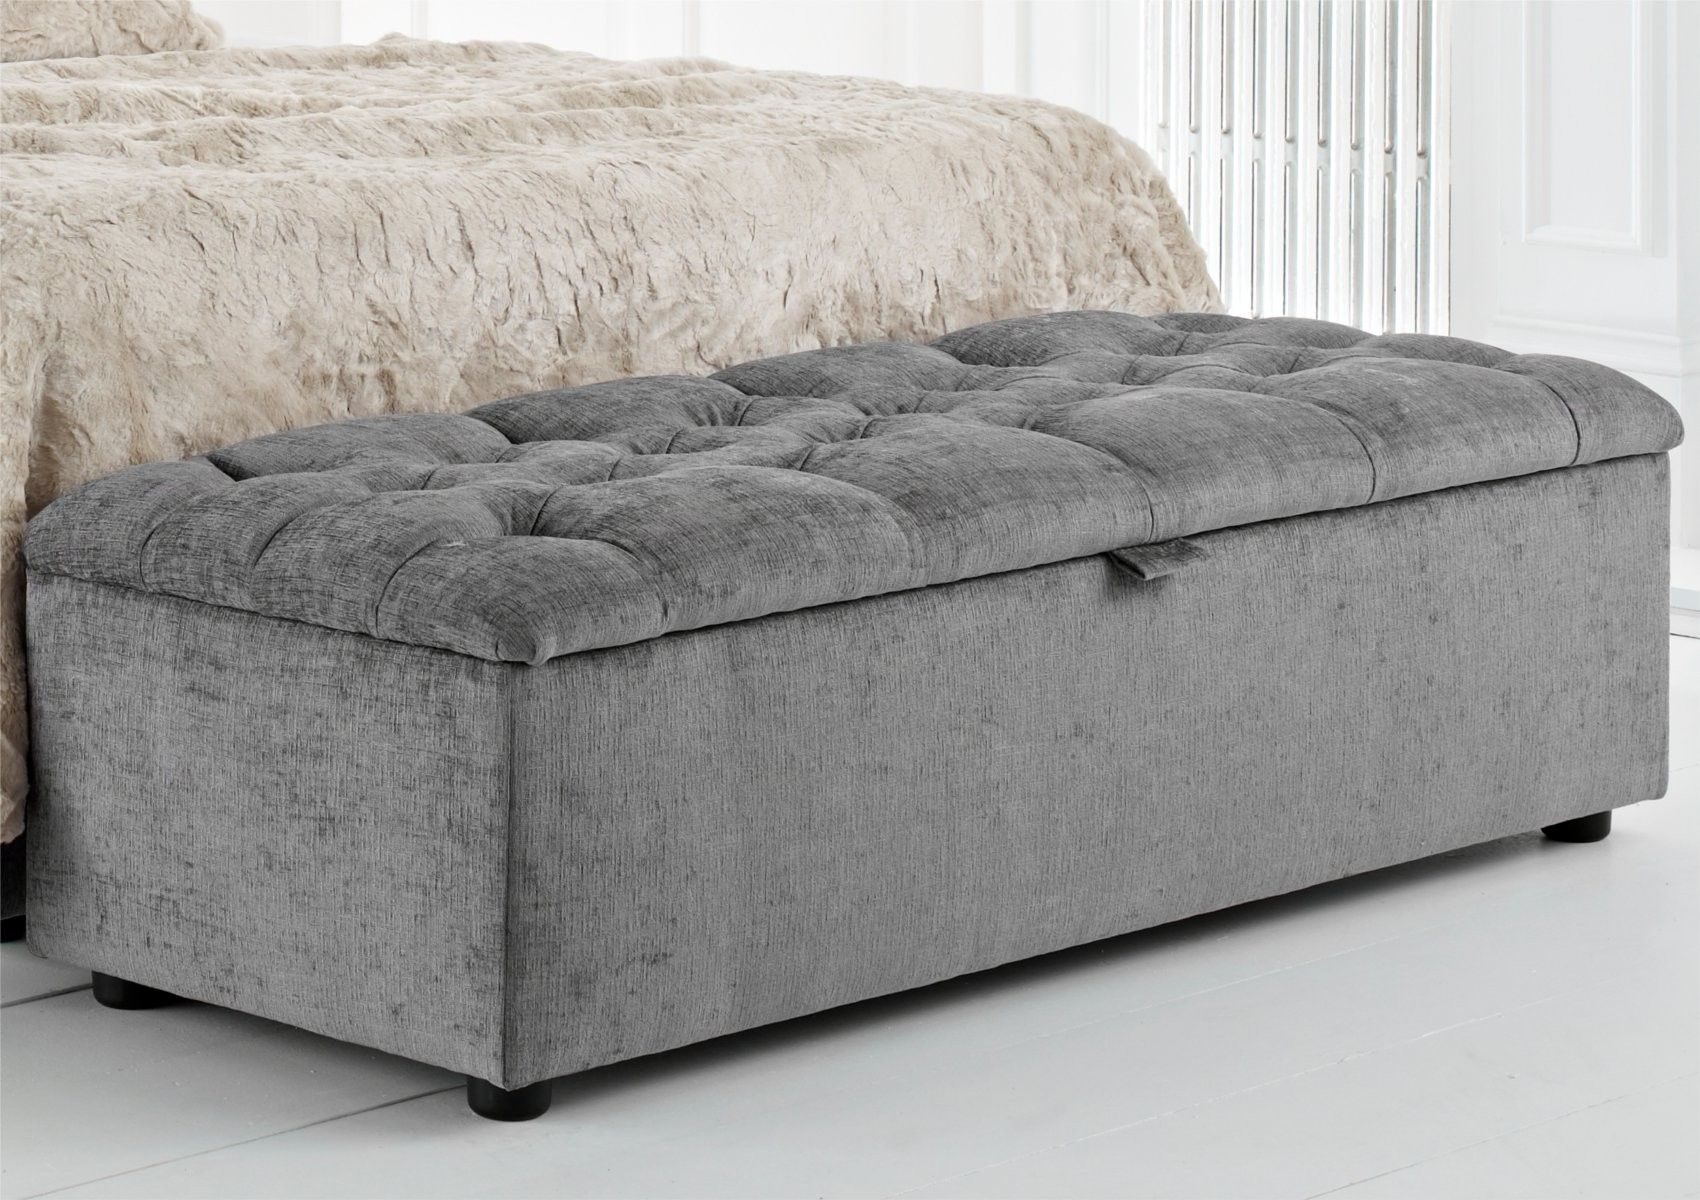 Space At A Premium Or Just Want Something To Sit On At The Foot Of The Bed Our Ascot Tufted Blanket Box Maybe A Use Blanket Box Ottoman Furniture Bedding Shop